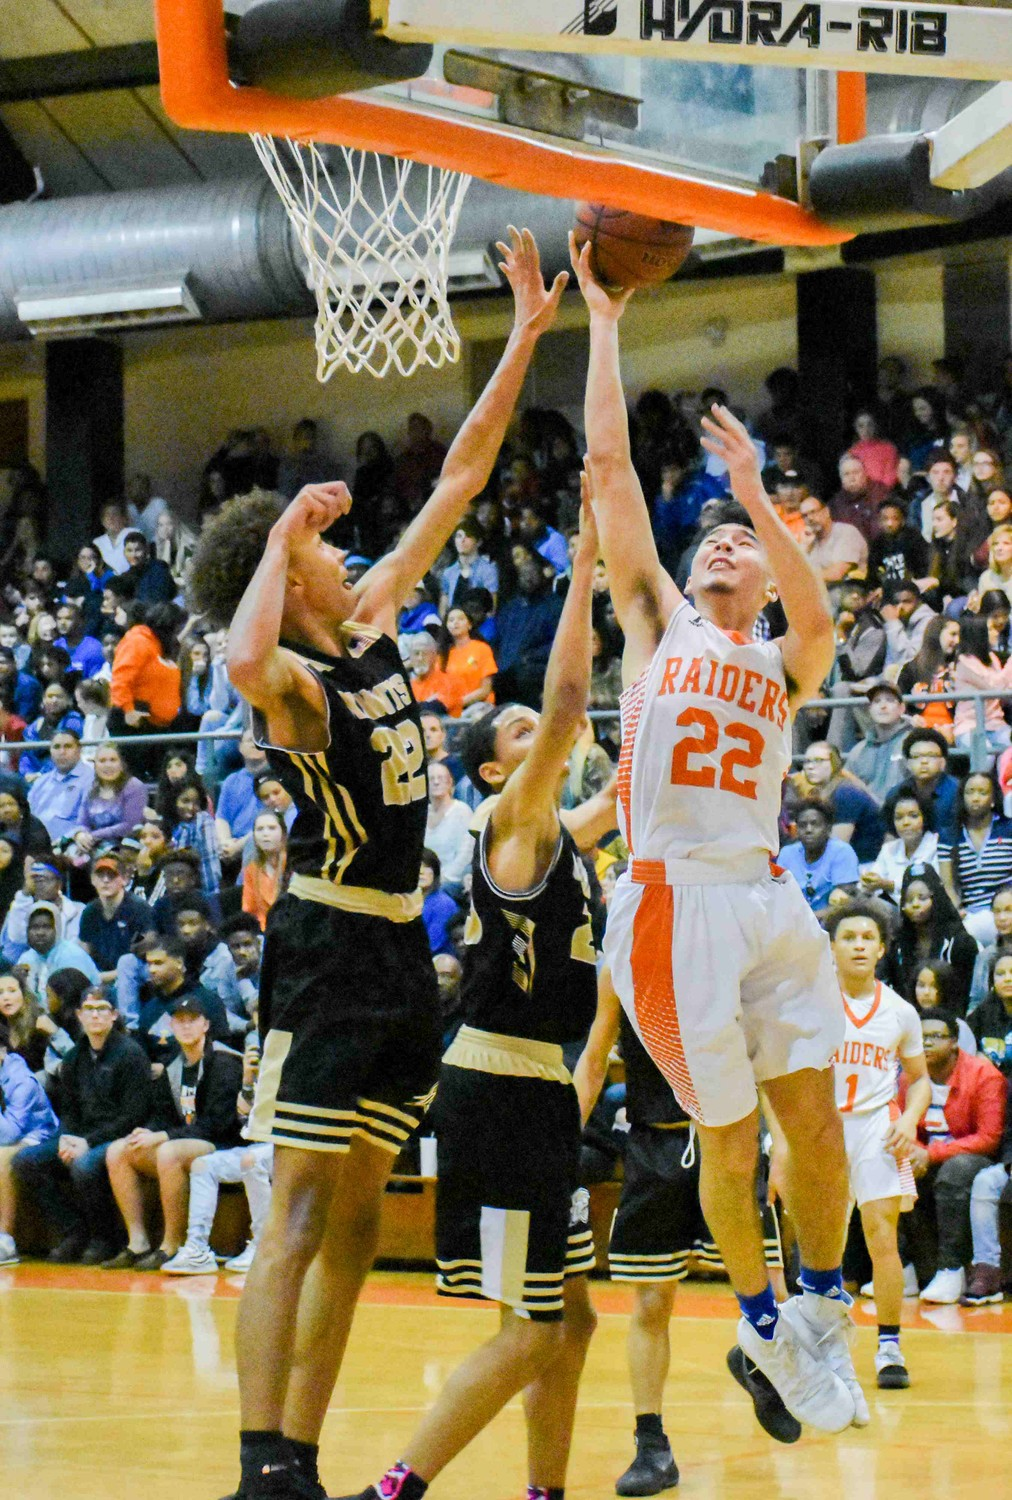 Orange Park High guard John Abate goes up for shot against Kameron McKenzie in Knights' non-district win Friday night at Orange Park High's Raiderdome.